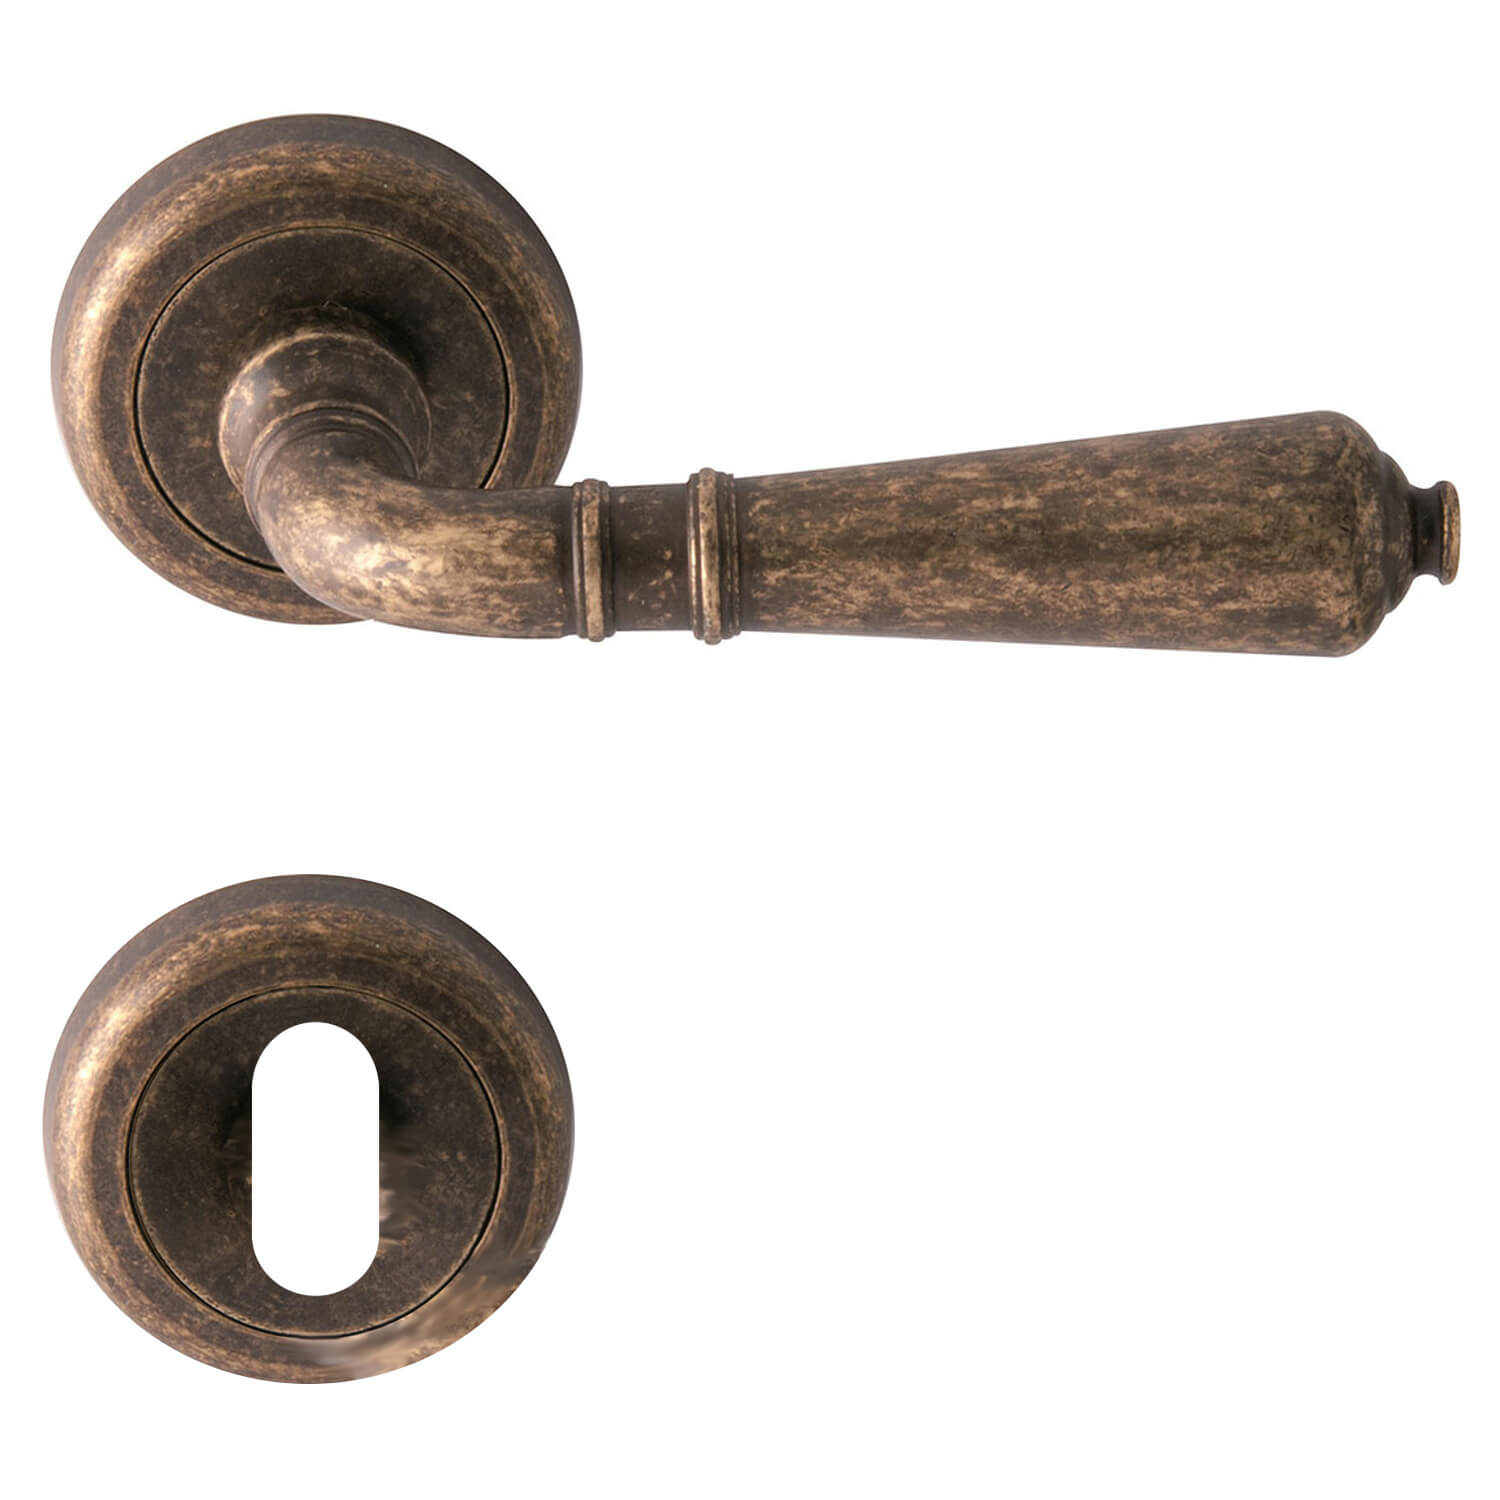 Door handle Bronze, Interior - Model ANTIQUE - Liberty Design Door Handles  - VillaHus.co.uk - Door Handle Bronze, Interior - Model ANTIQUE - Liberty Design Door